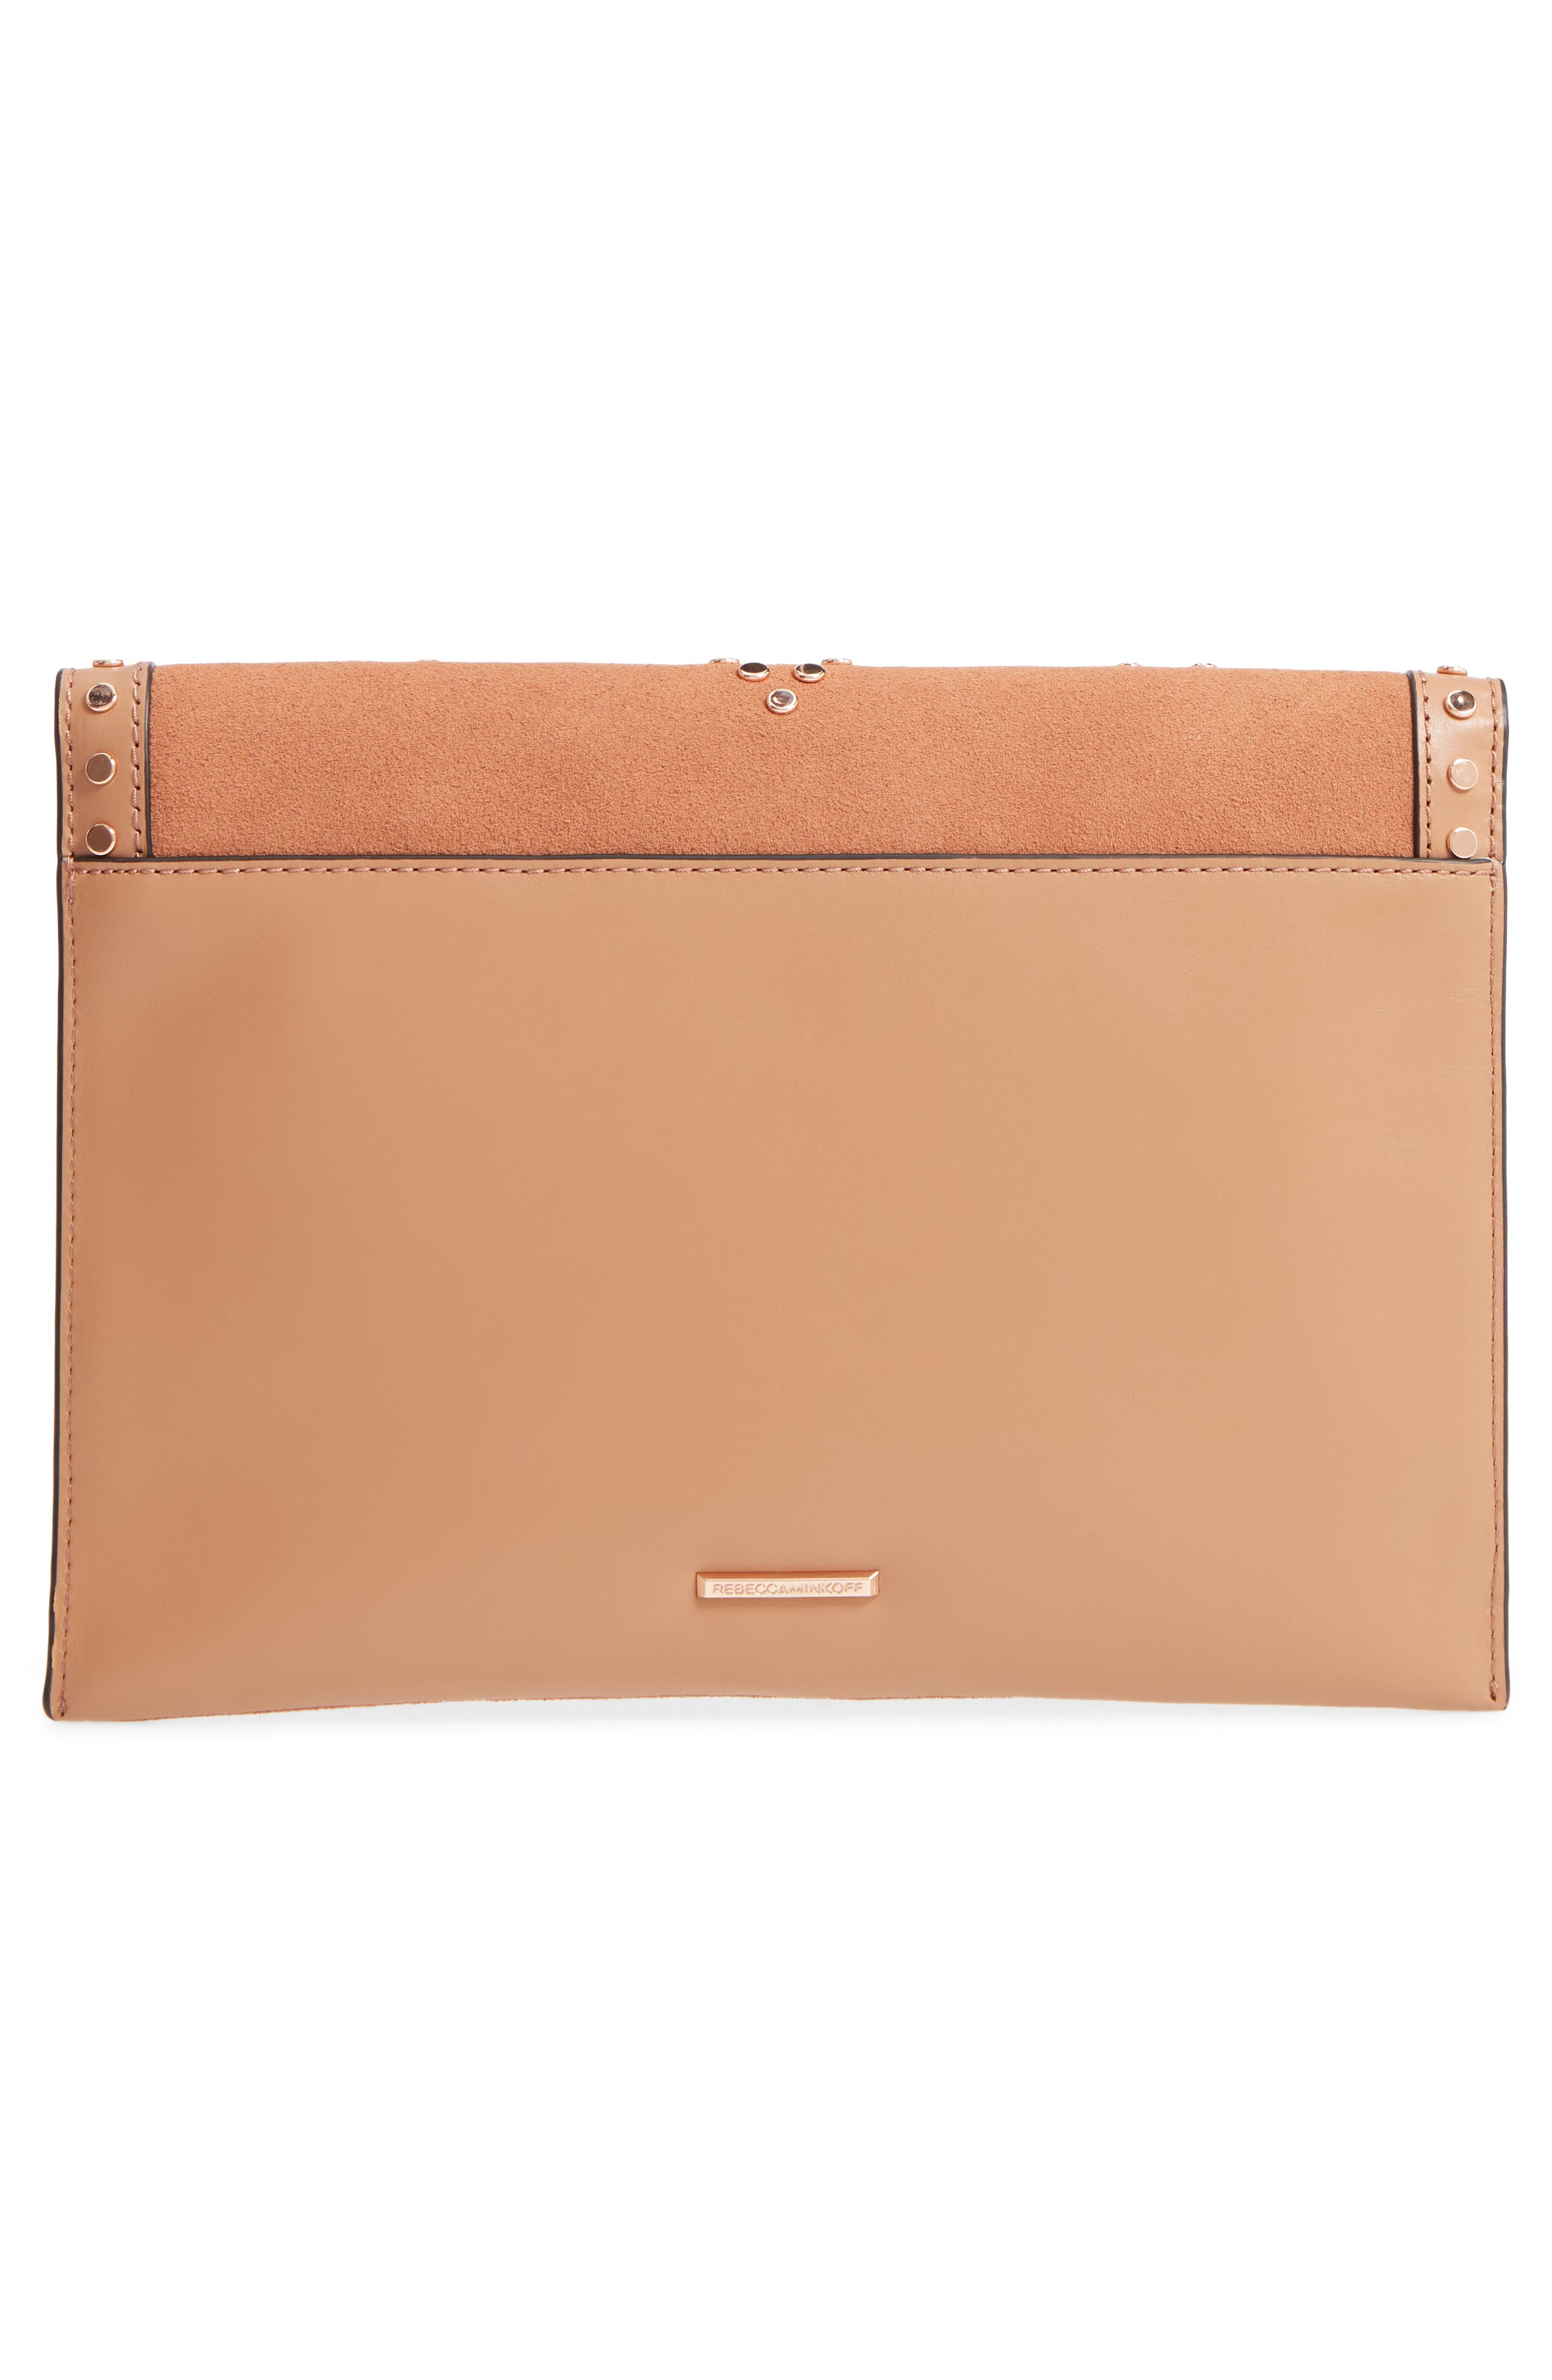 Leo Studded Leather & Suede Clutch,                             Alternate thumbnail 3, color,                             Desert Tan